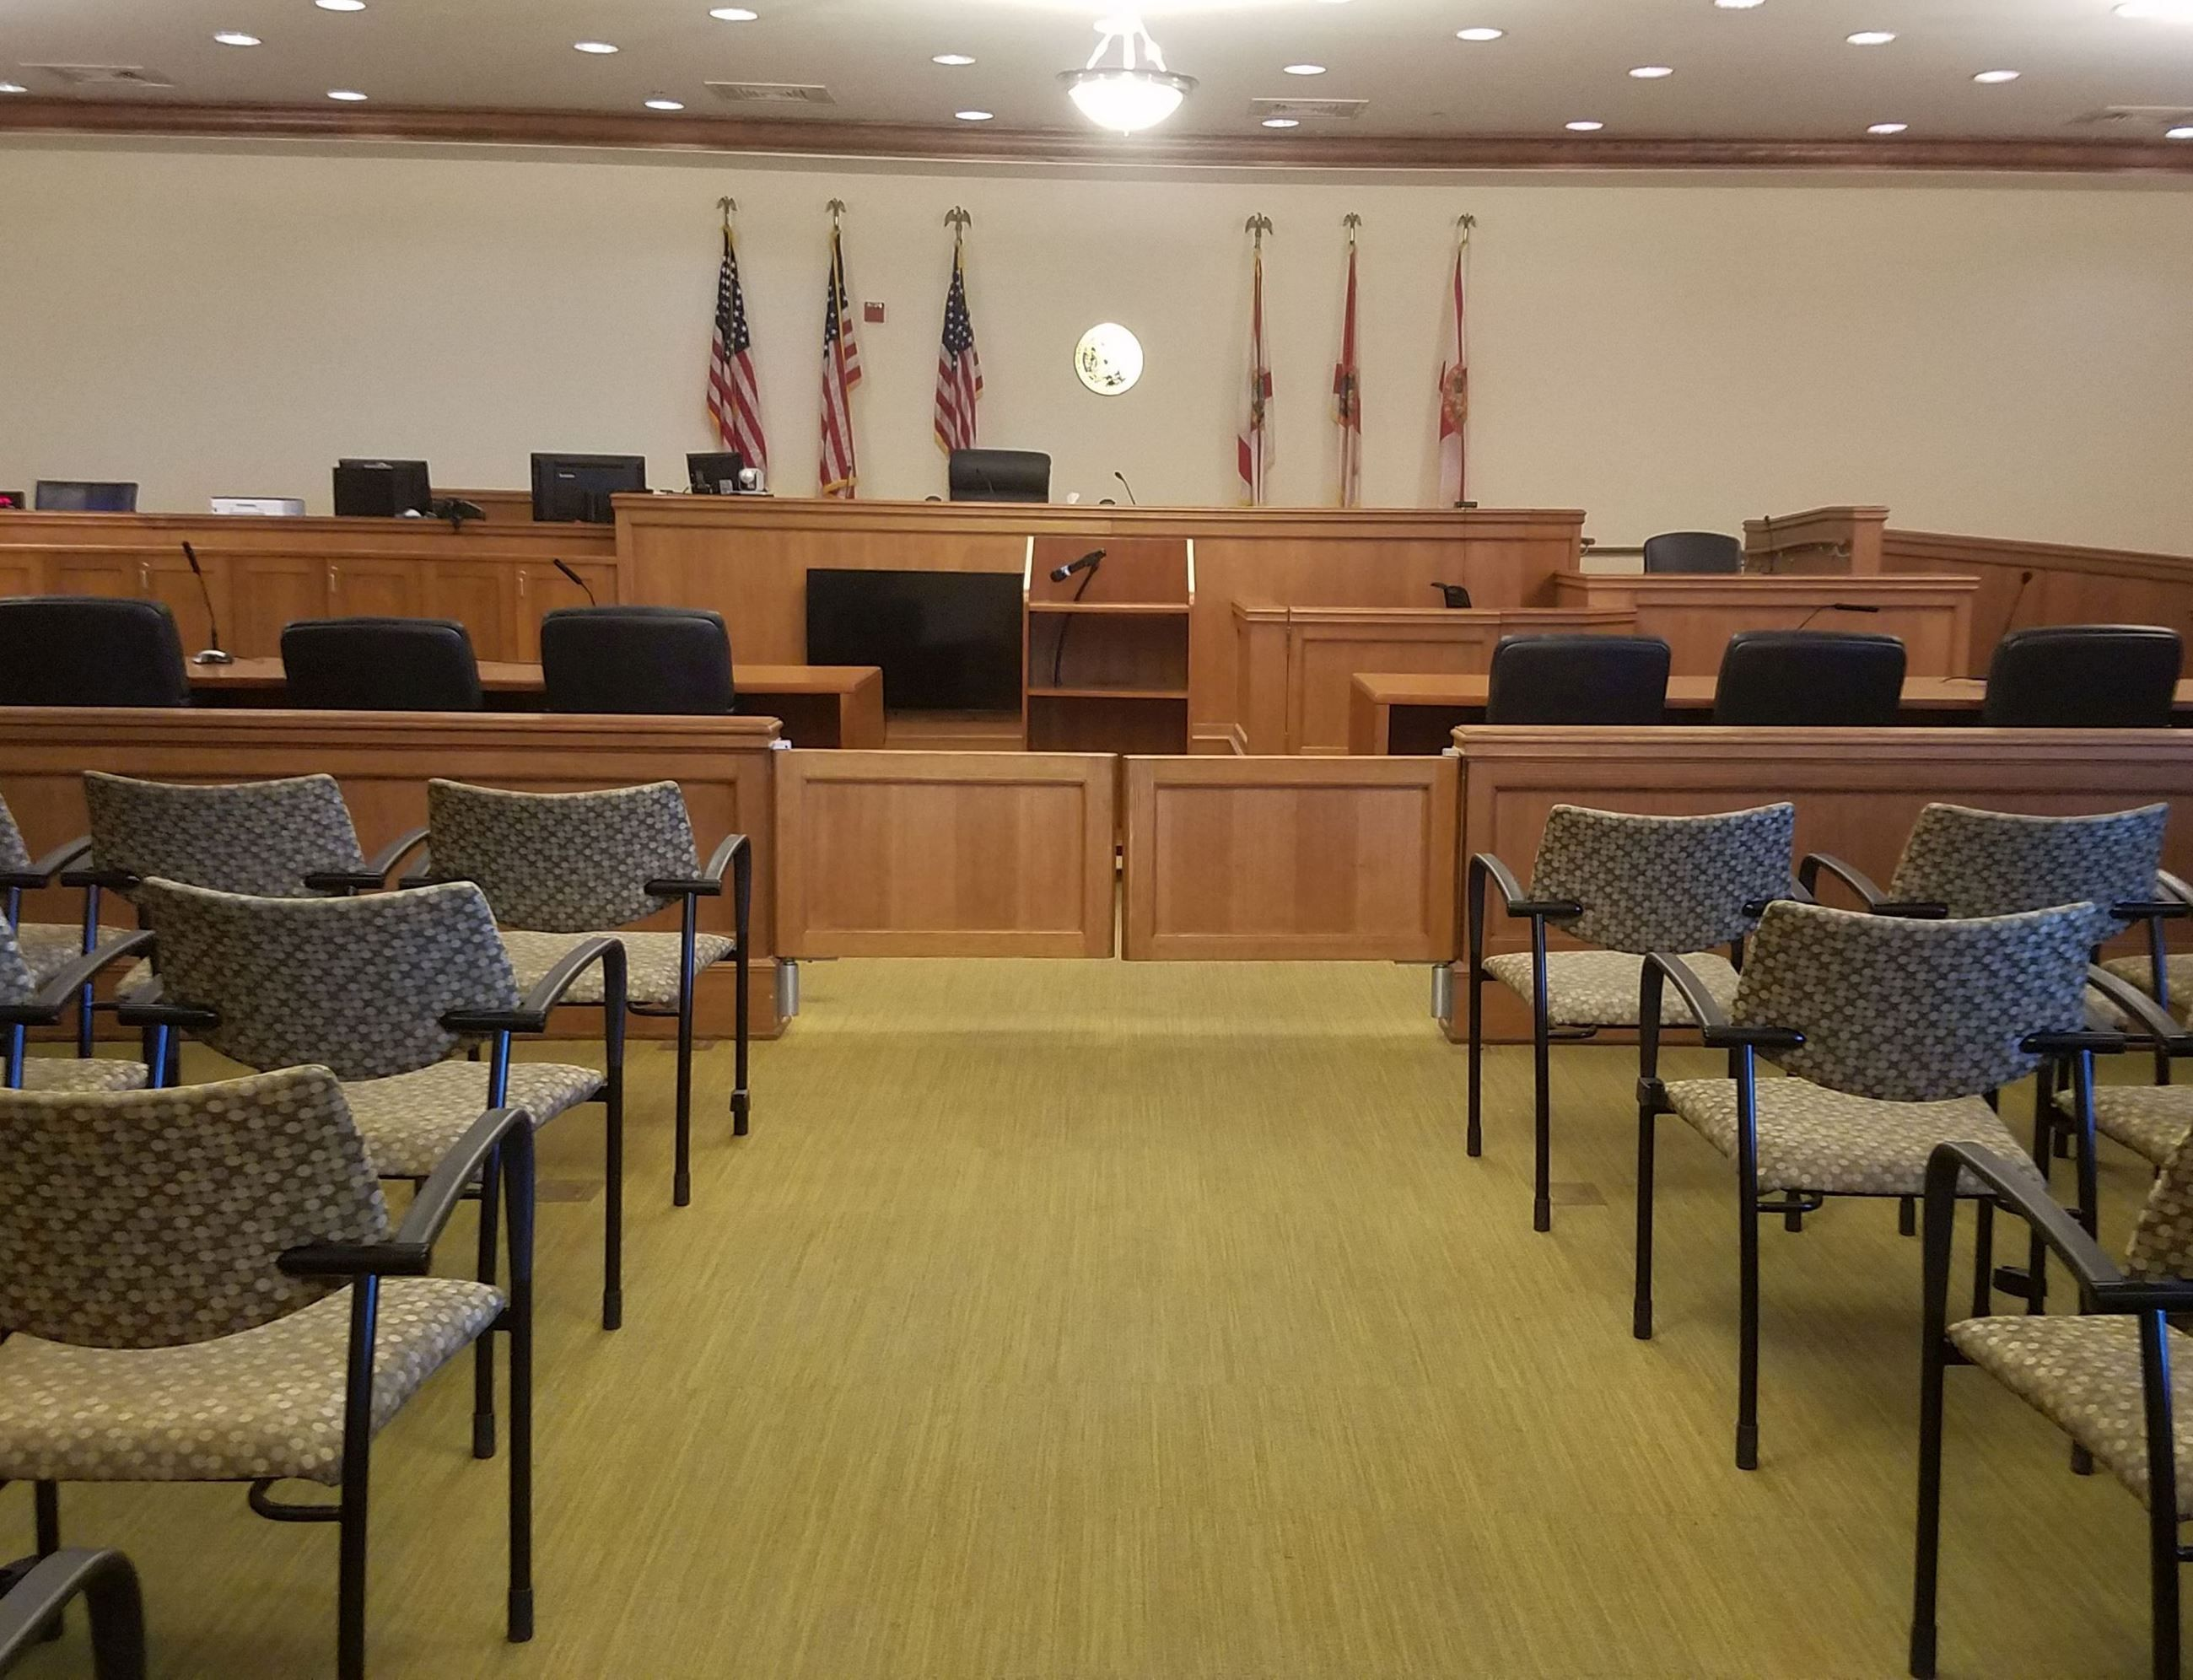 This is a courtroom